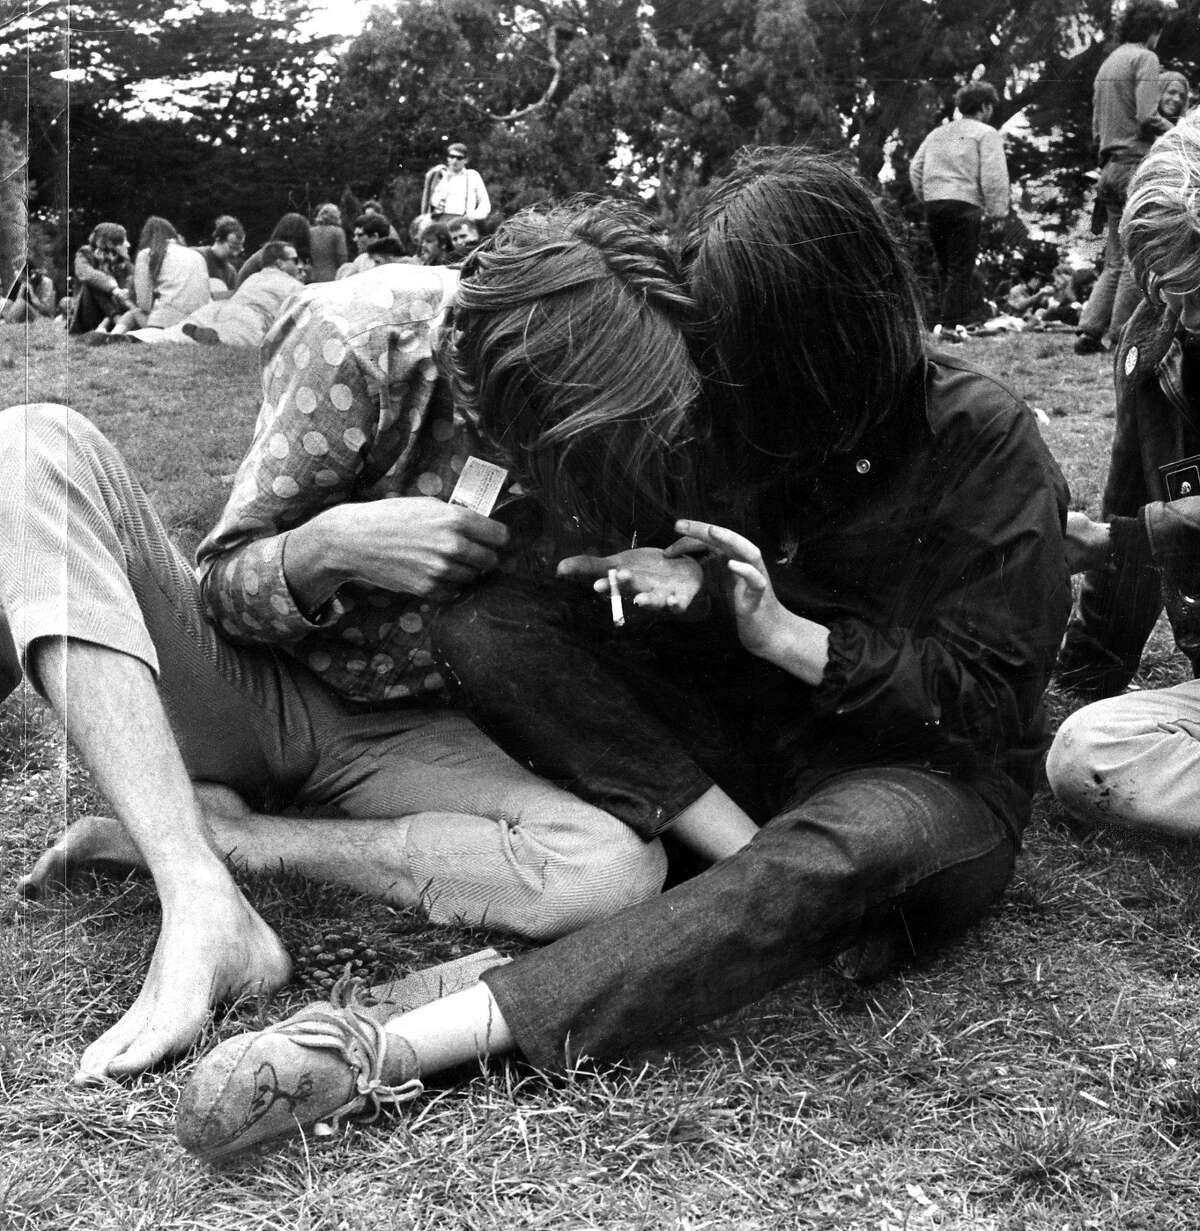 Dope Scene big Business in the Haight. Hippie Hill [Golden Gate Park] turn on. Times-Post Service October 31, 1967